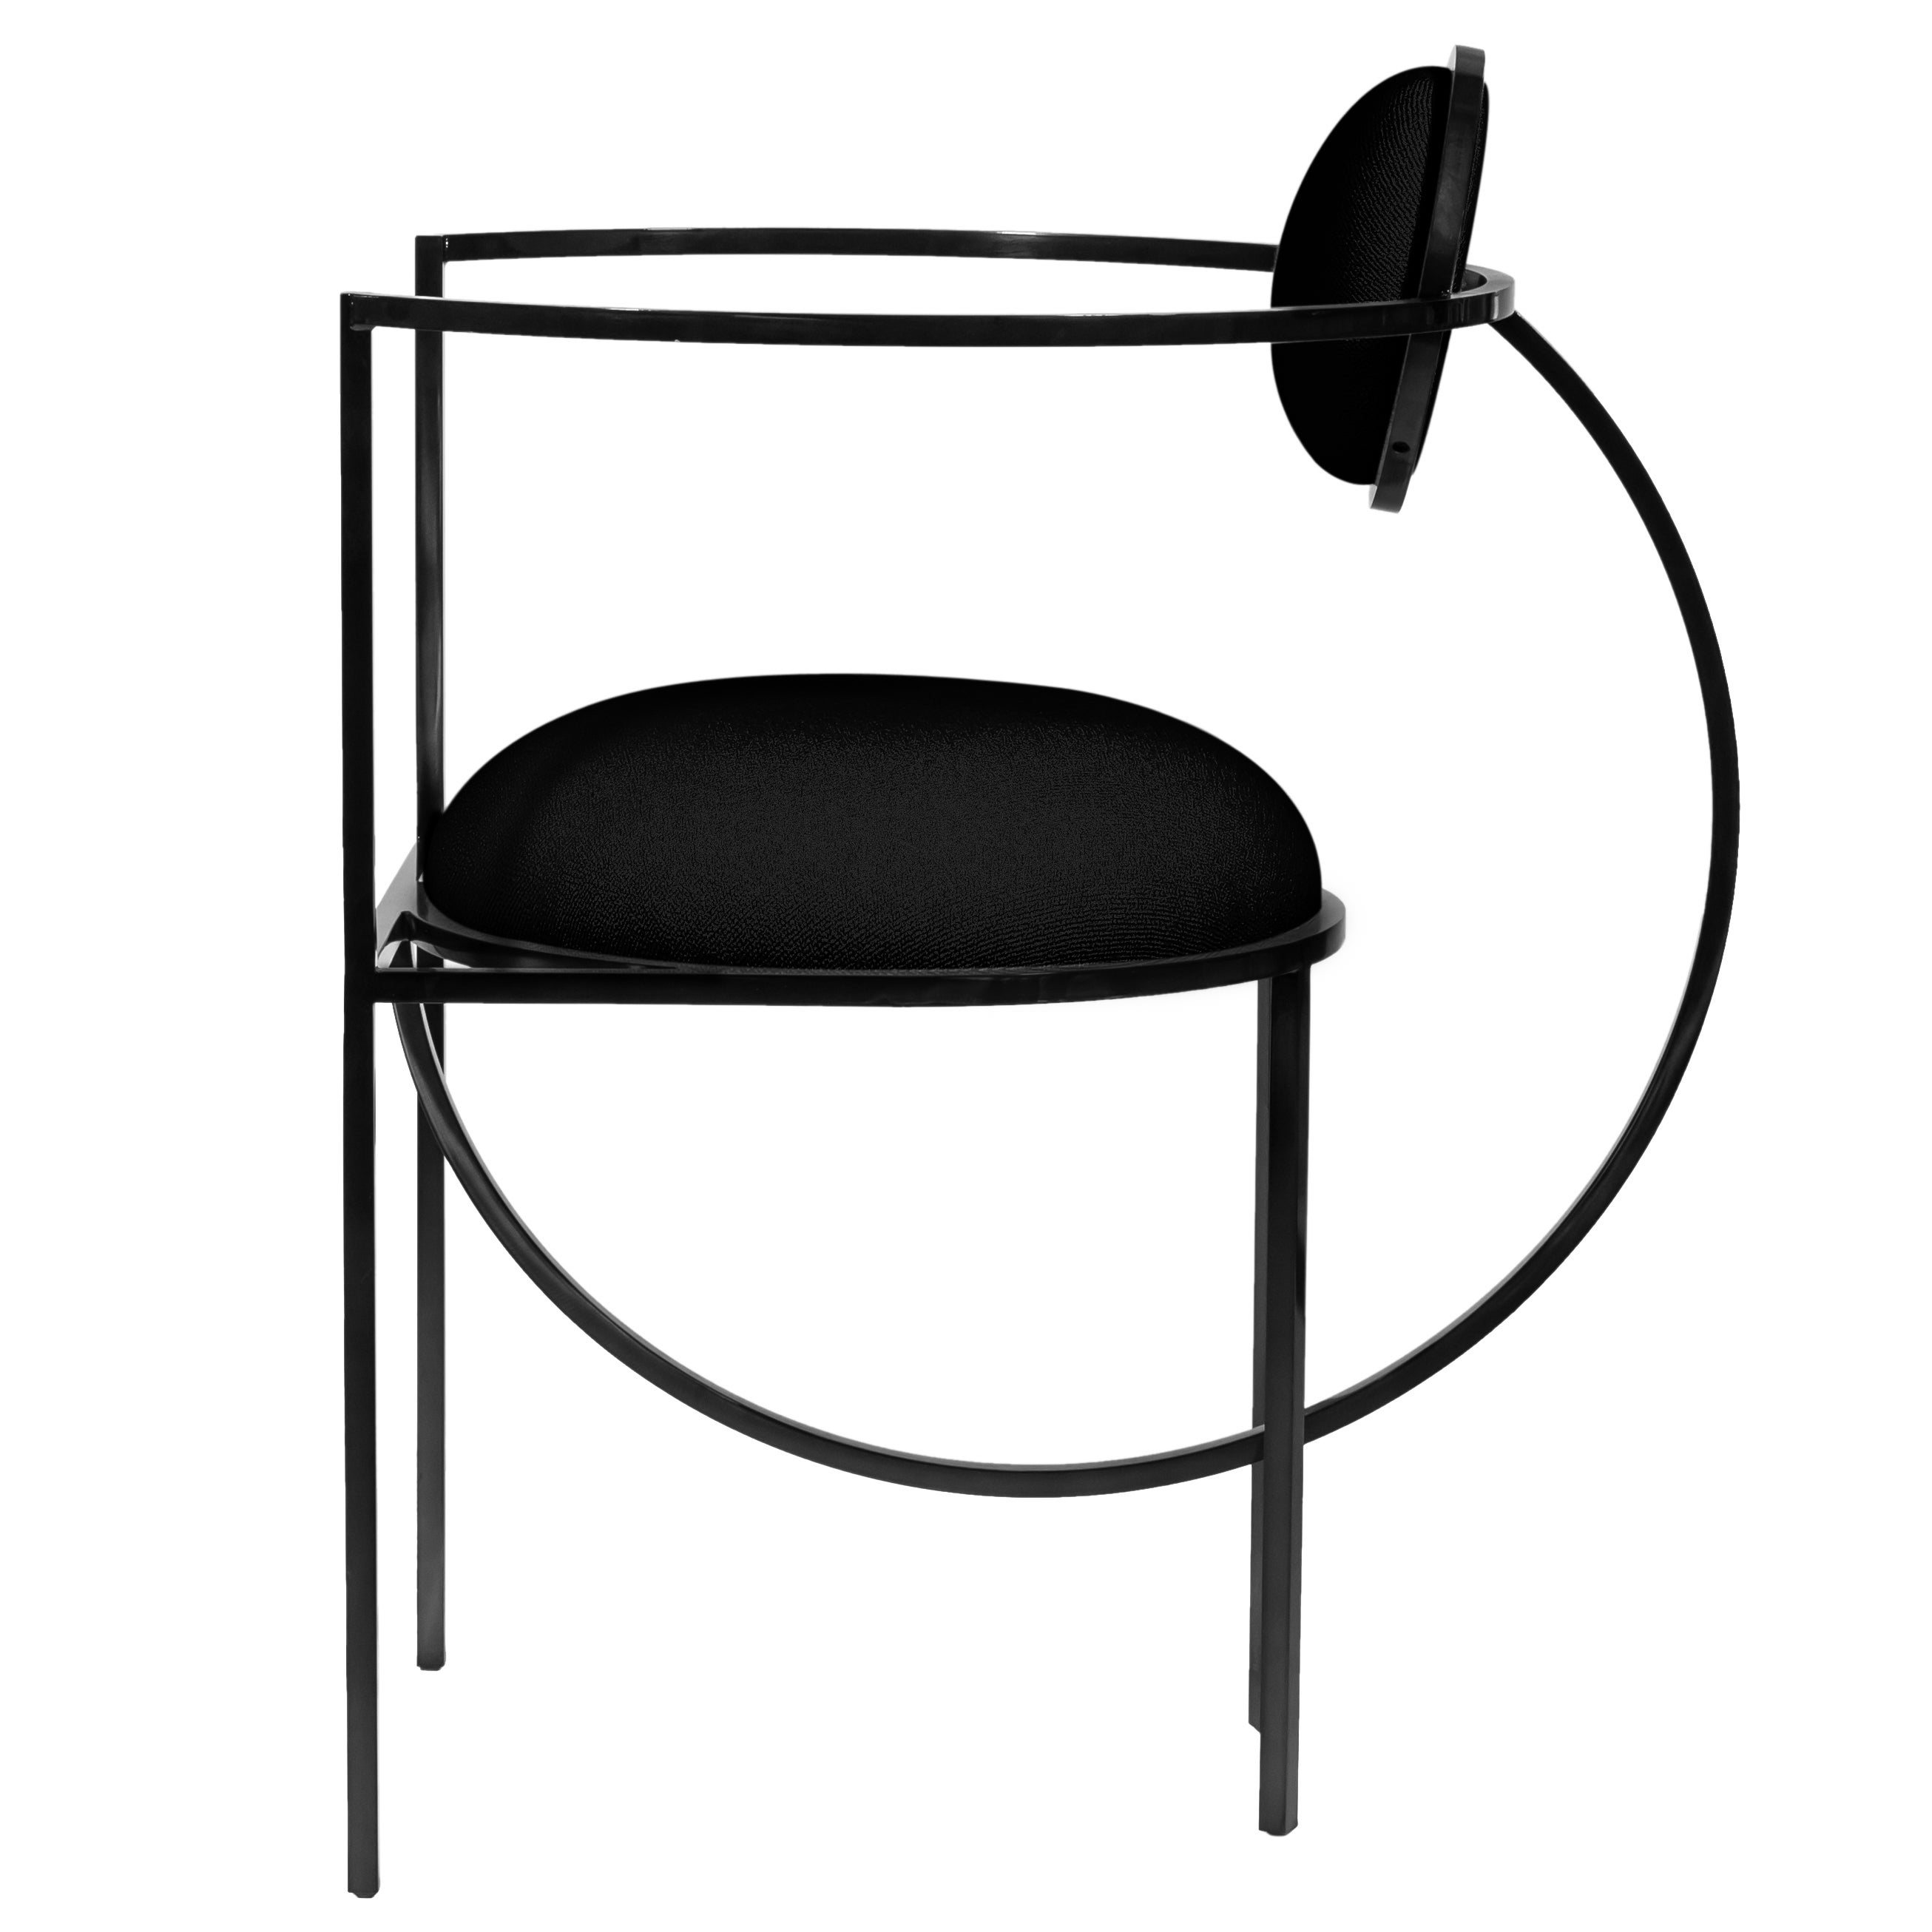 Lunar Chair in Black Fabric and Coated Steel, by Lara Bohinc